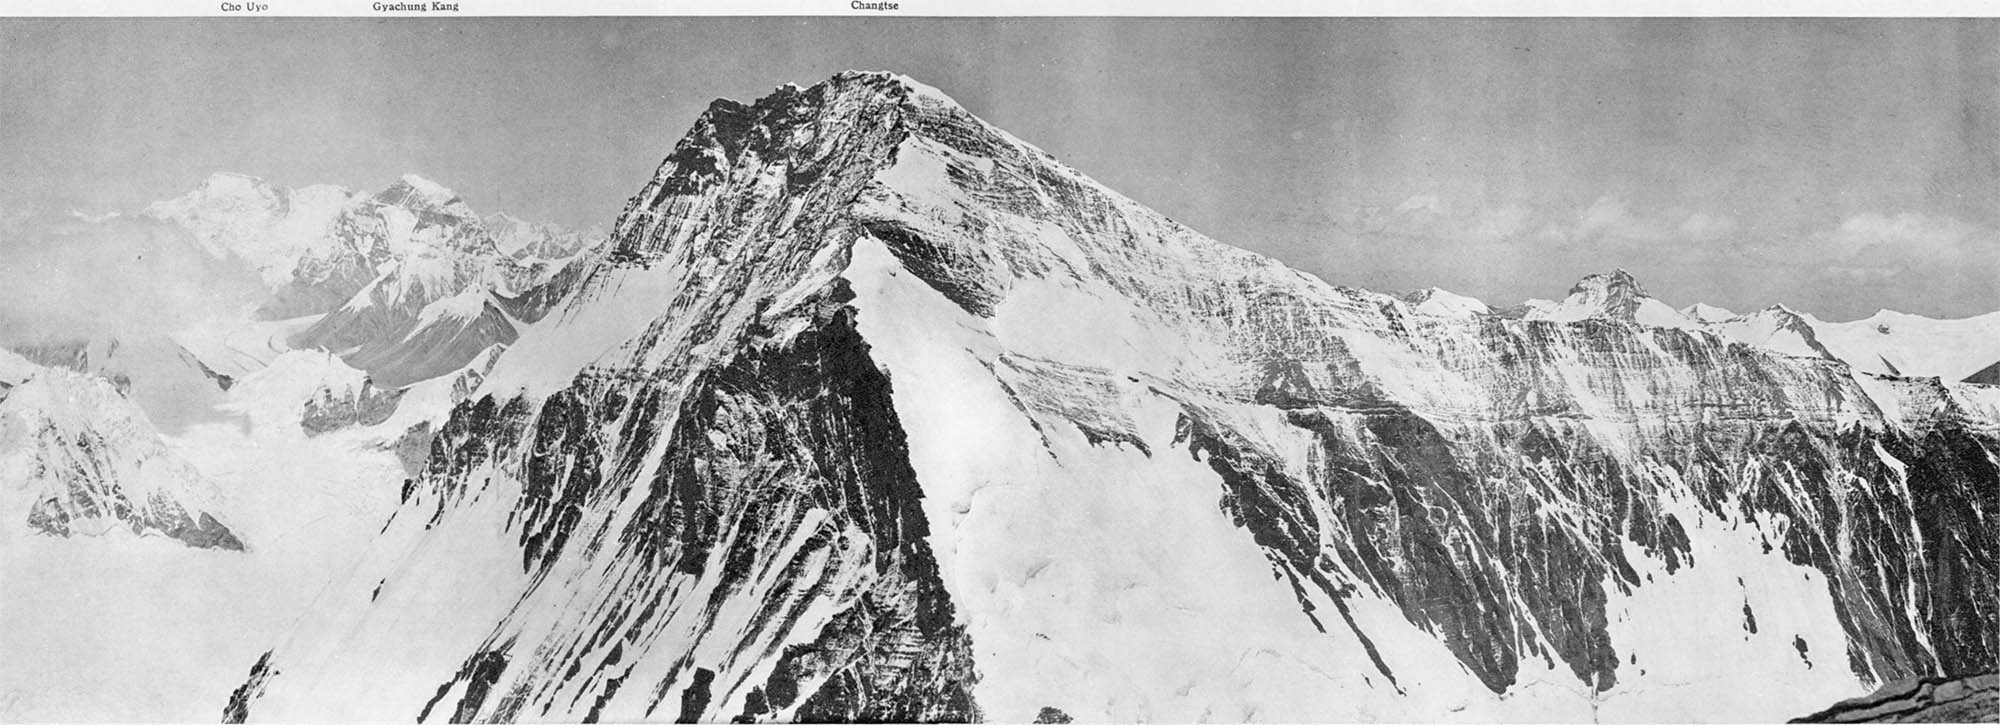 perssuive speech on mt everest outline Sarah is writing an essay about the mountain-climbing culture at mount everest in tibet and nepal while revising her first draft, she creates a reverse outline to double check that her paper has a logical flow.